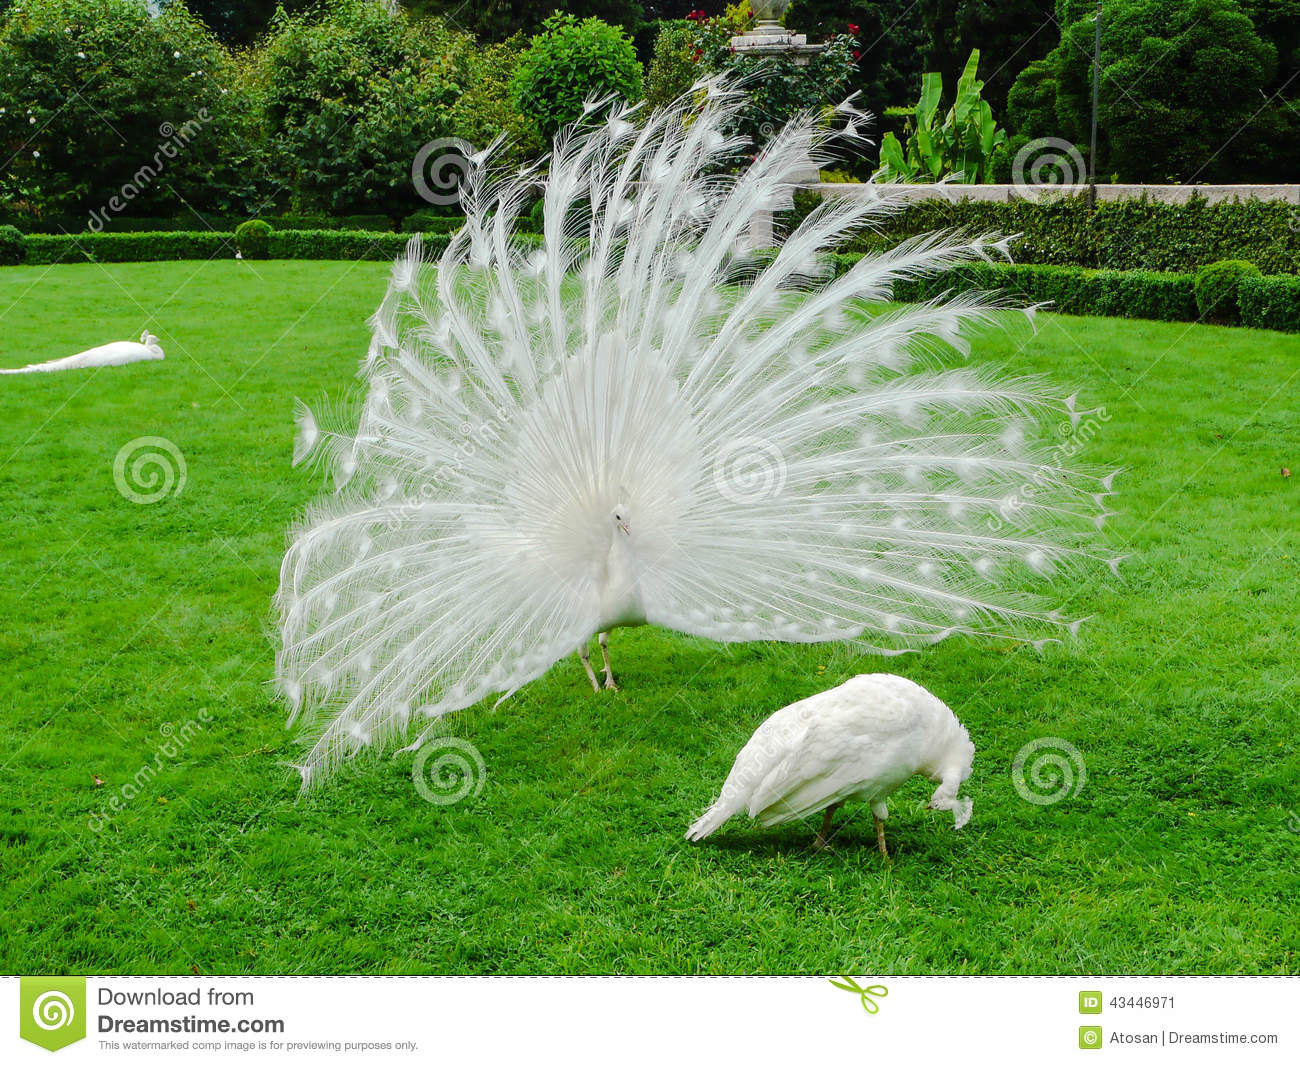 rare example of pear peacocks with white plumage instead of the more ...